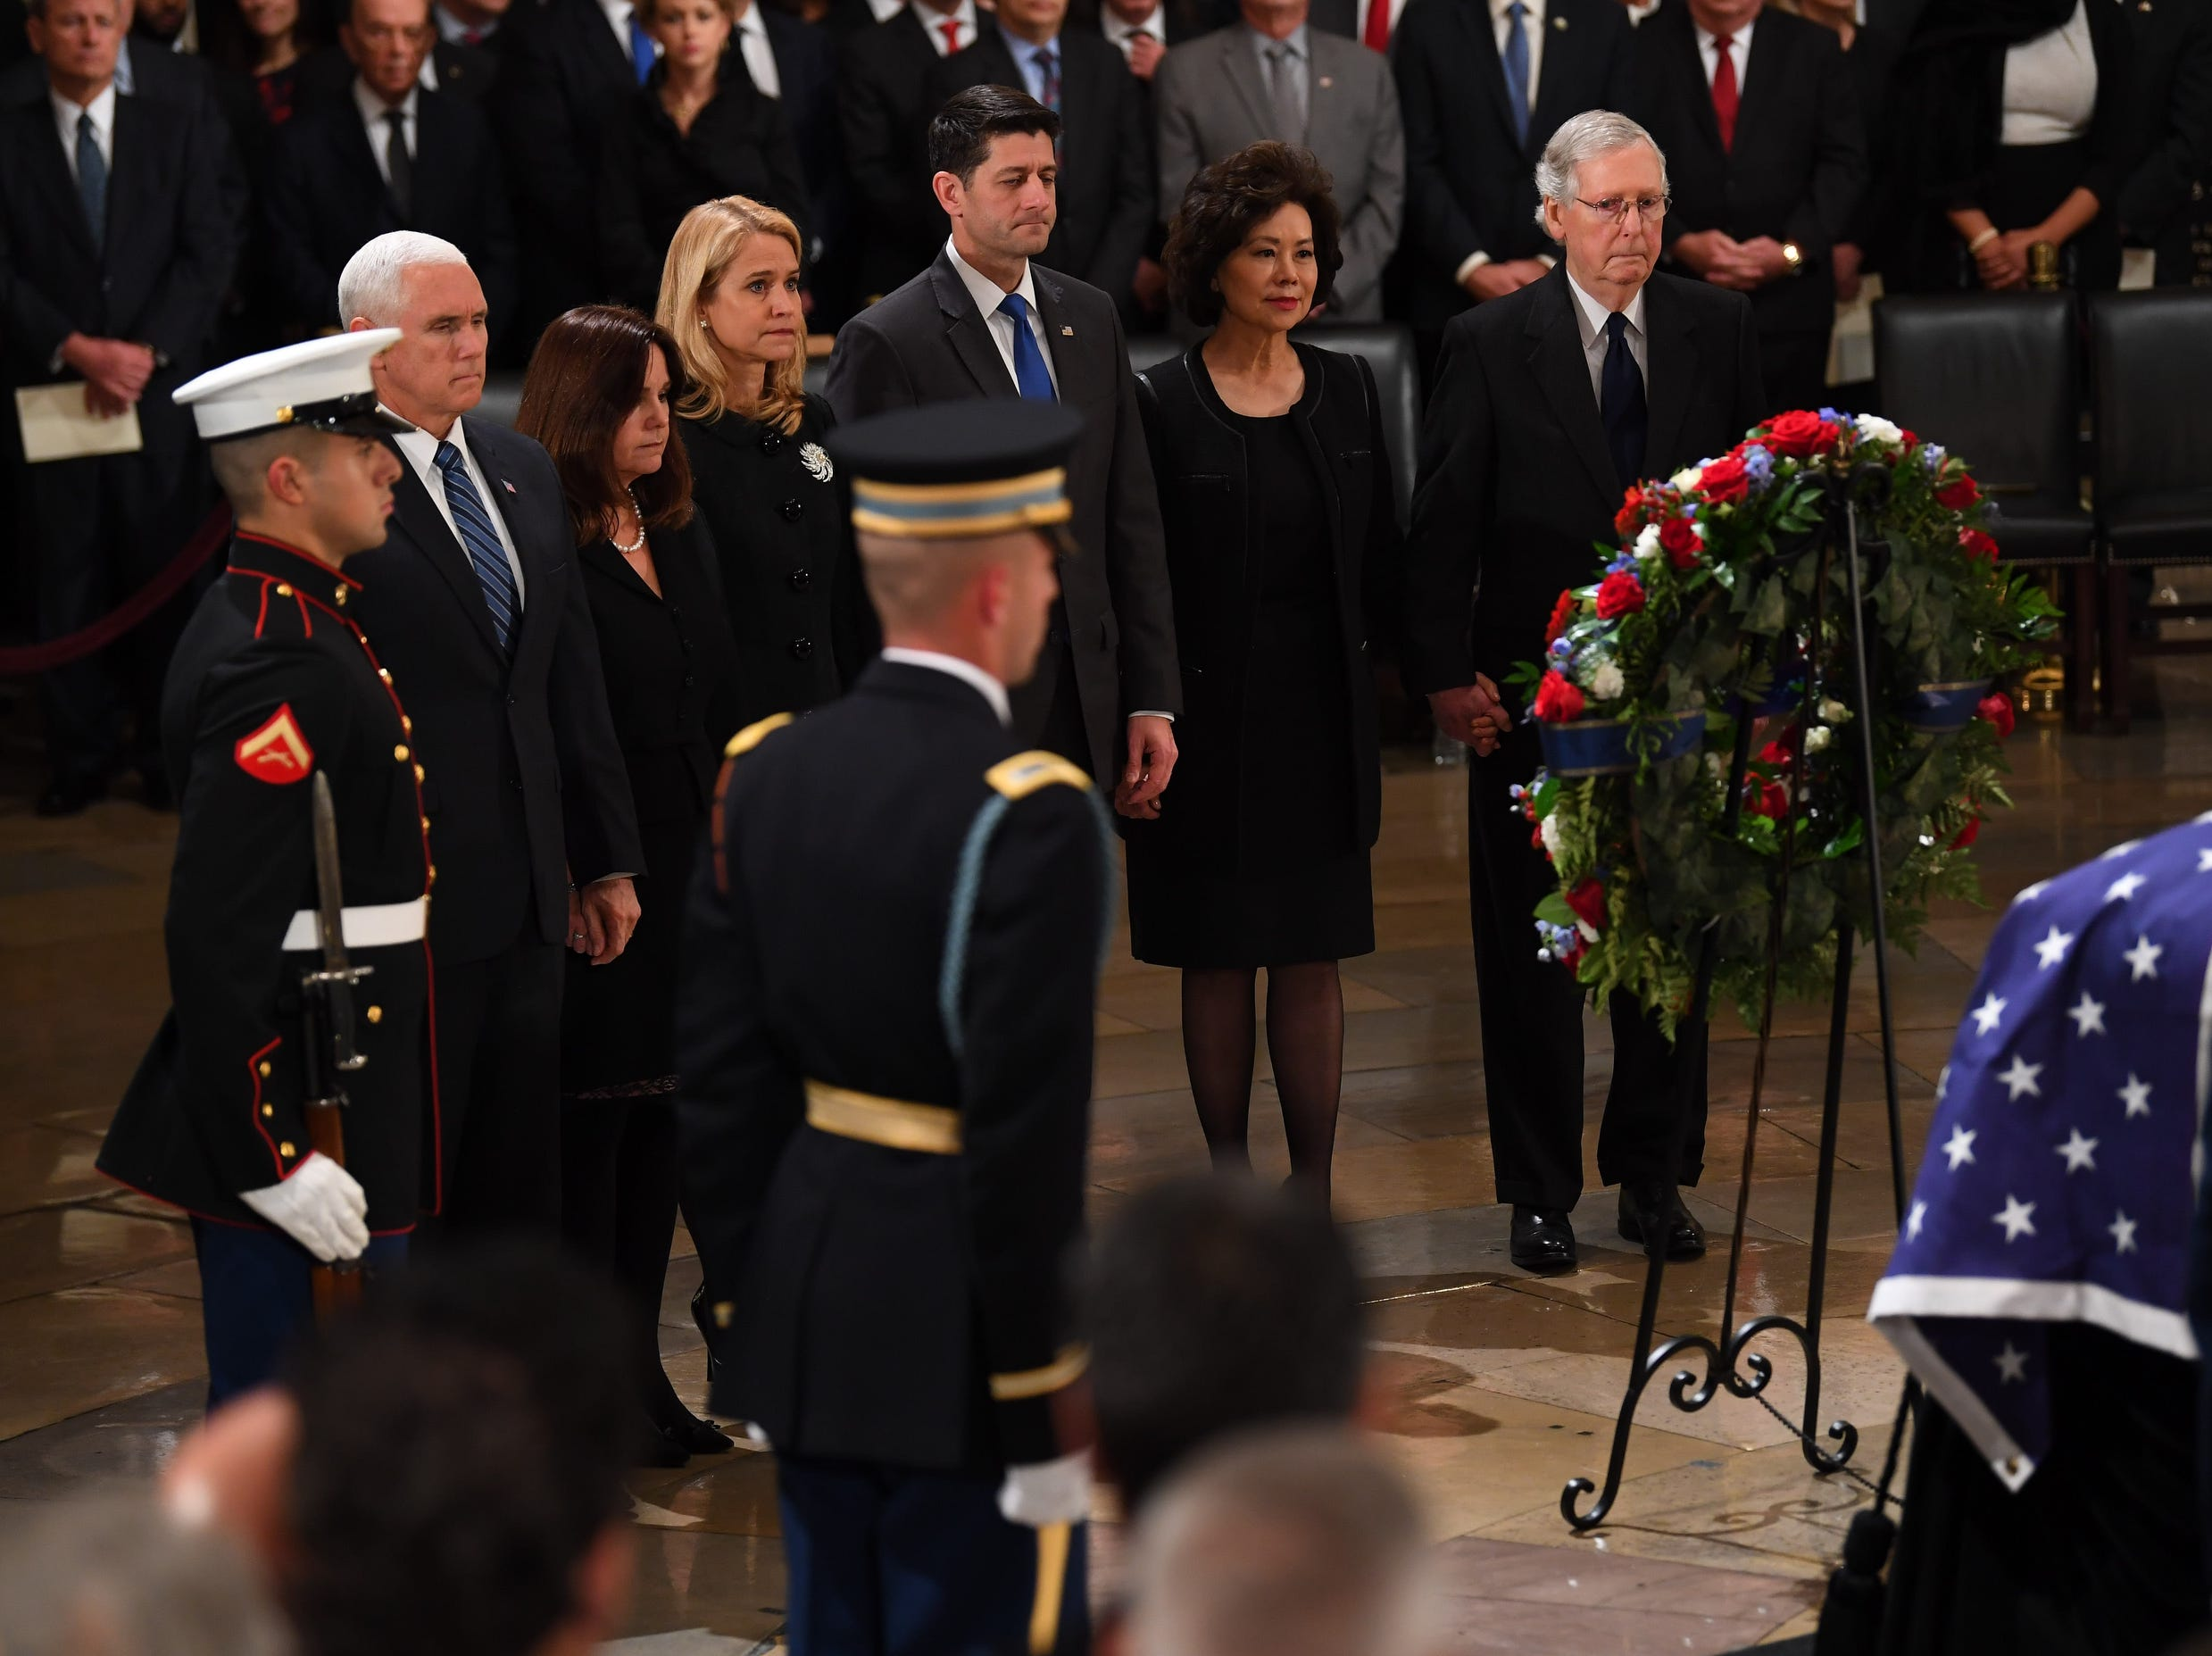 Top- ranking Republicans Vice President Mike Pence, 2nd left, his wife Karen Pence, Janna Ryan, House Speaker Paul Ryan, Sec. of Transportation Elaine Chow and  Senate Majority Leader Mitch McConnell pay their respects to the late President George H.W. Bush who lies in state at the U.S. Capitol Rotunda.